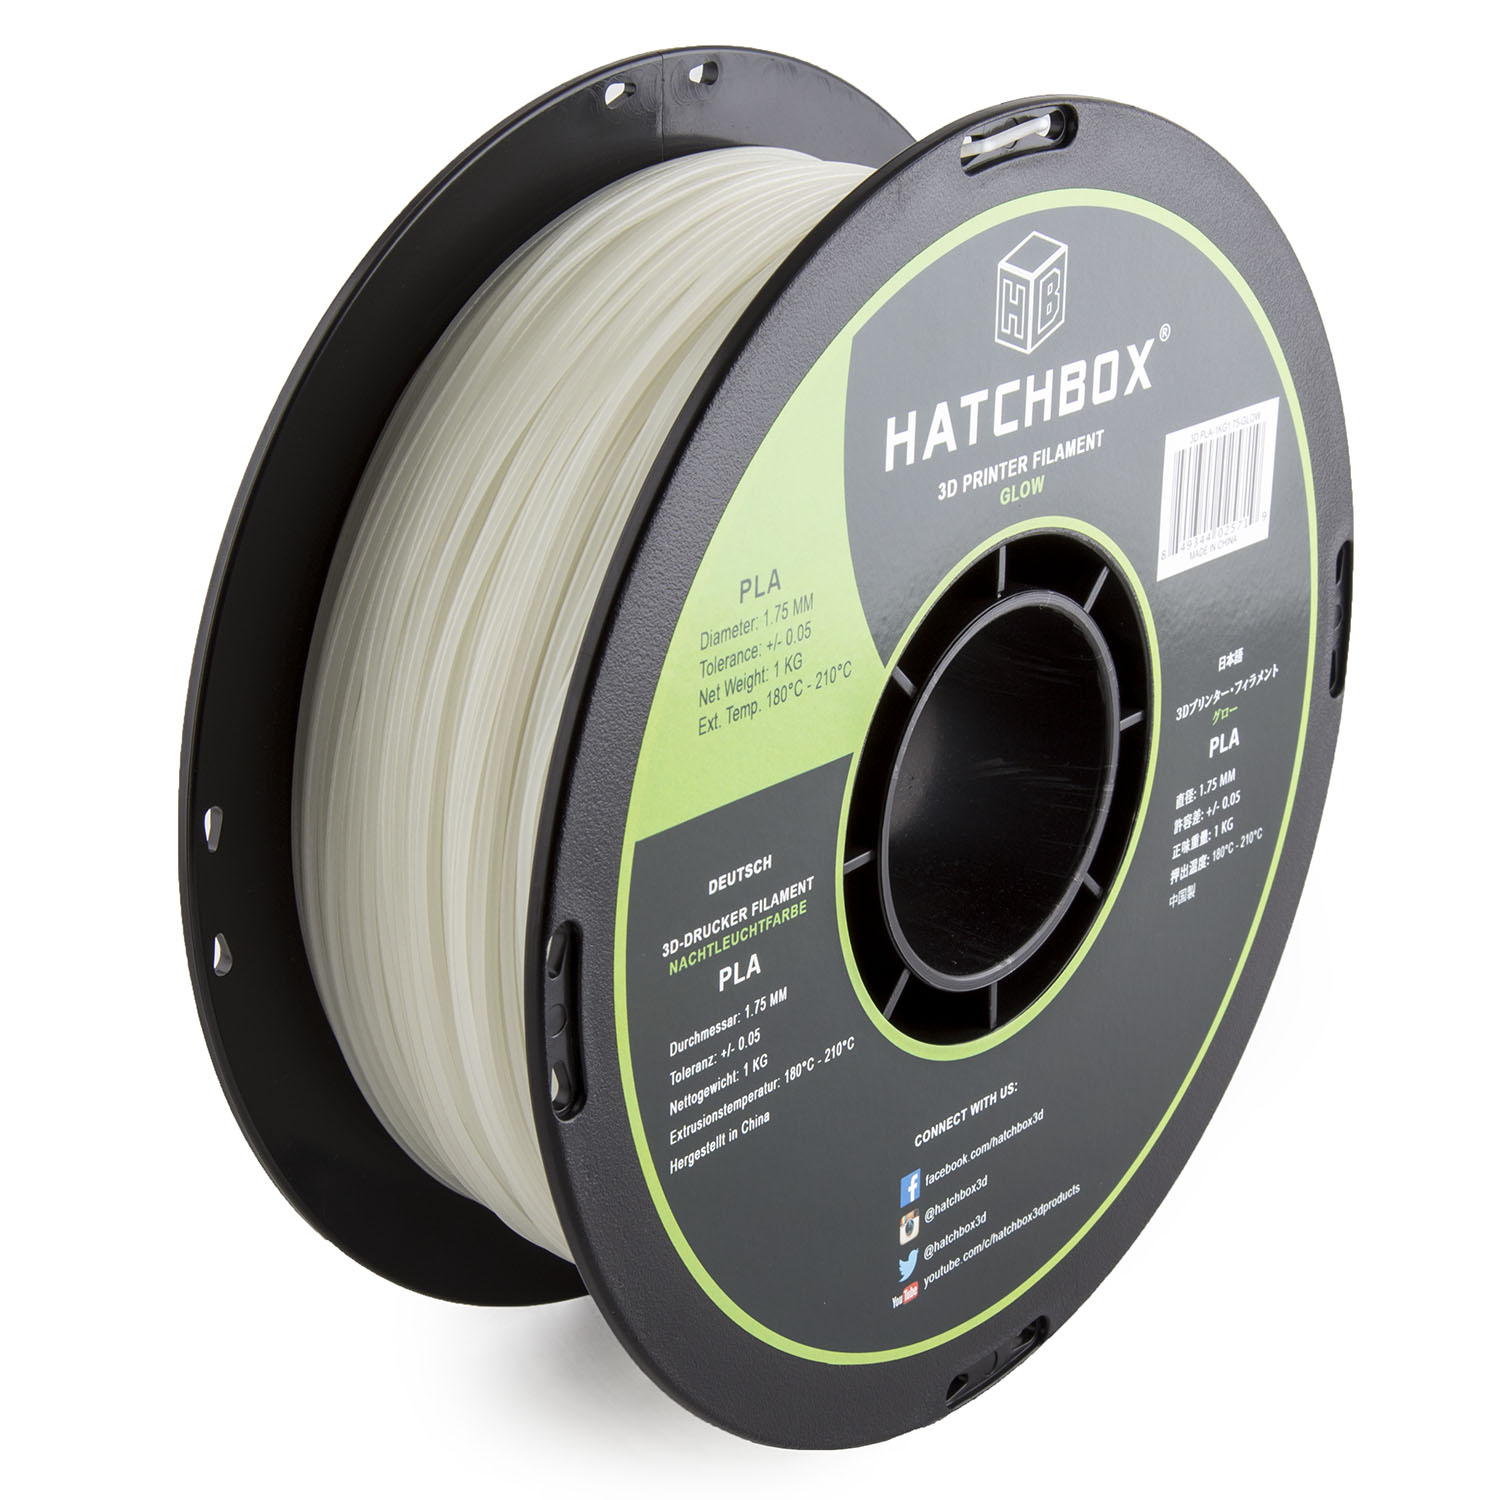 HATCHBOX 3D PLA-1KG1.75-GLOW PLA 3D Printer Filament, Dimensional Accuracy +/- 0.05 mm, 1 kg Spool, 1.75 mm, Glow in the Dark